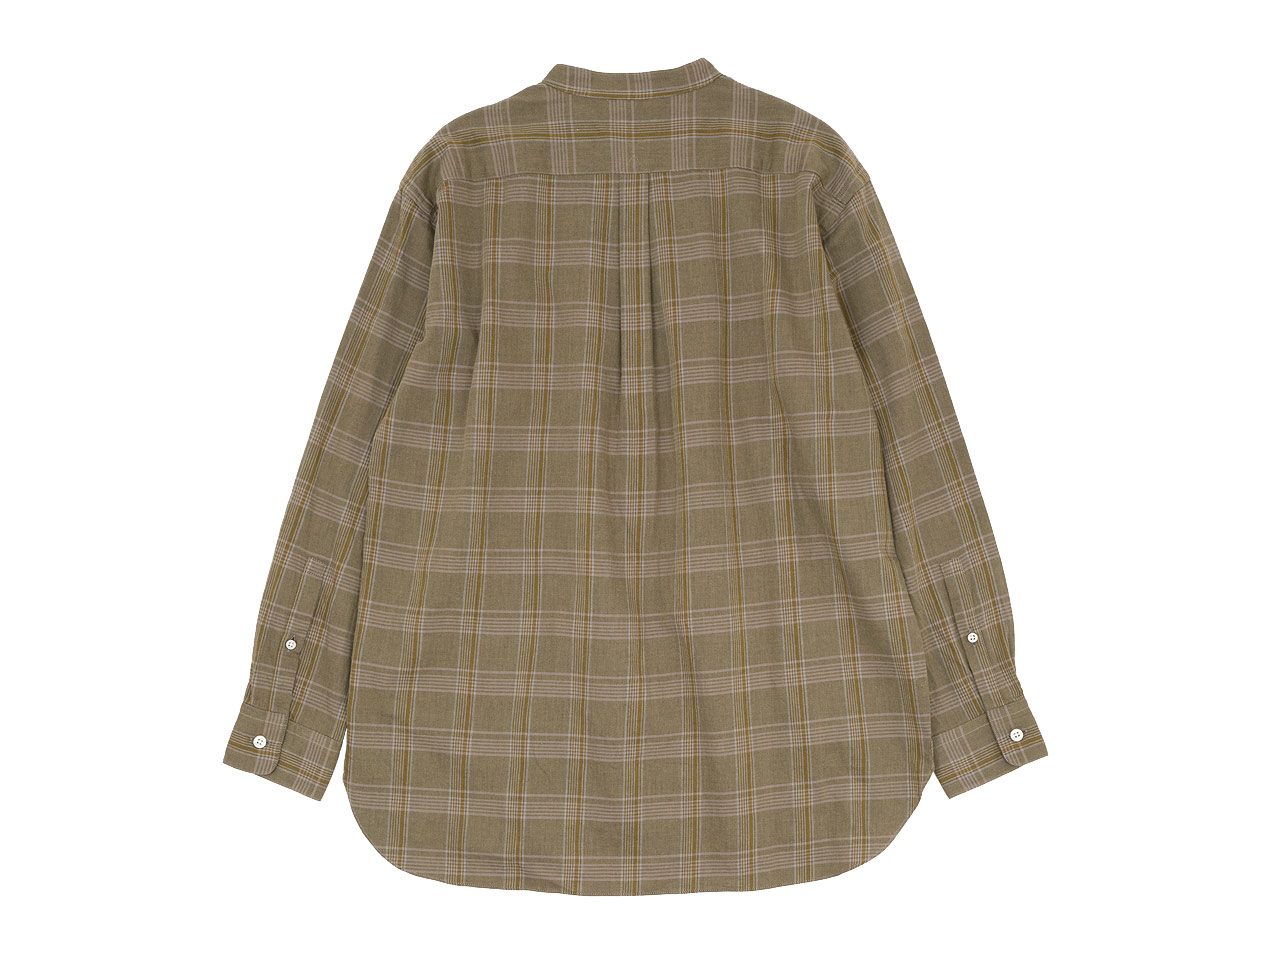 maillot mature twill check pull over stand shirts